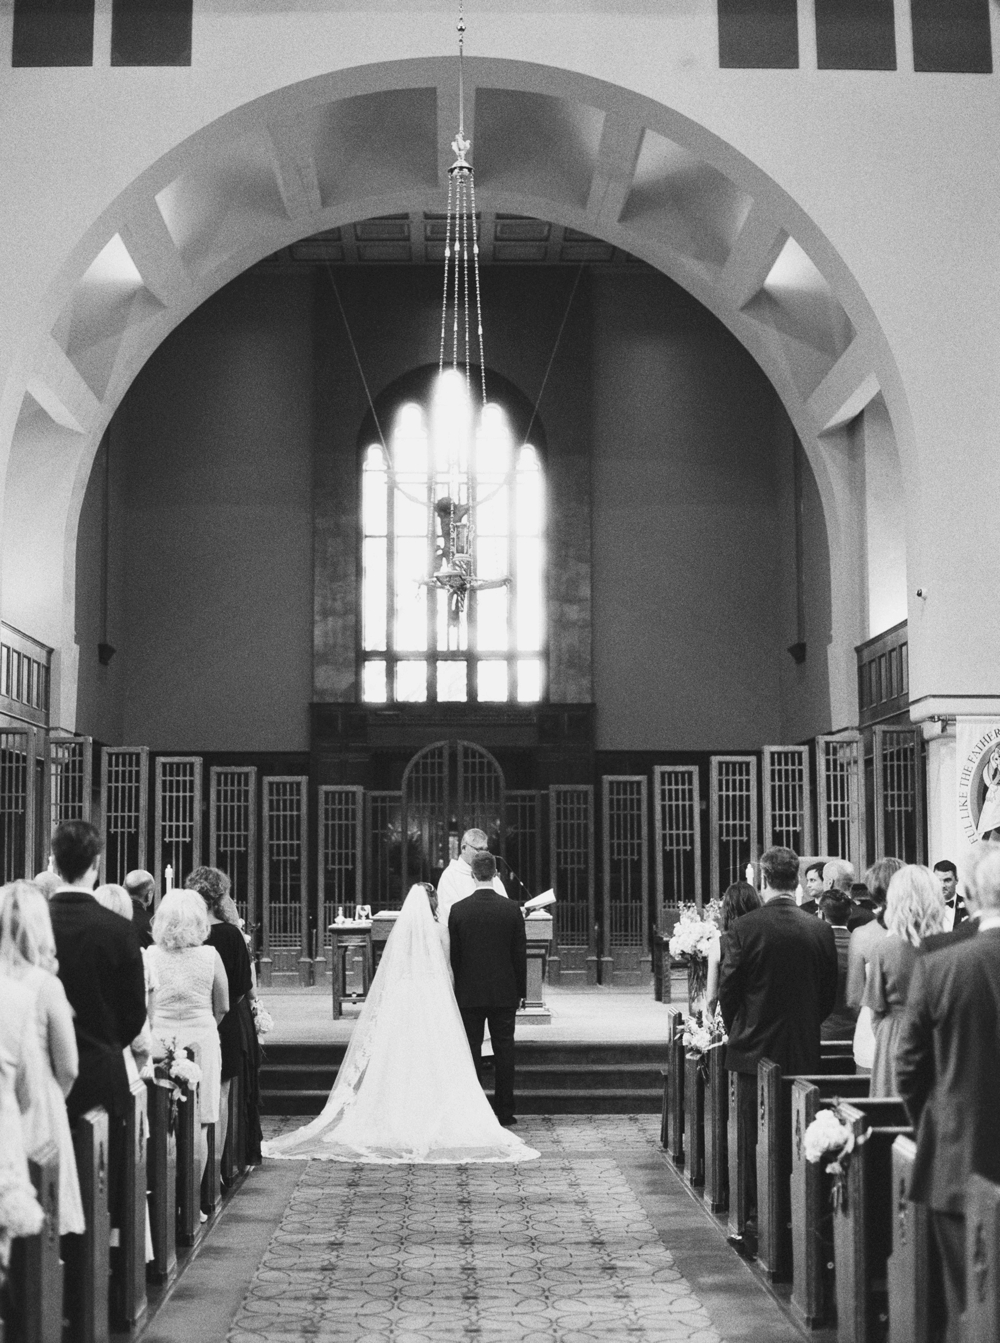 Calgary Wedding Photographer | Canmore Wedding Photographers | Banff Wedding Photography | Fairmont Palliser | Calgary Church | Blue bridesmaids